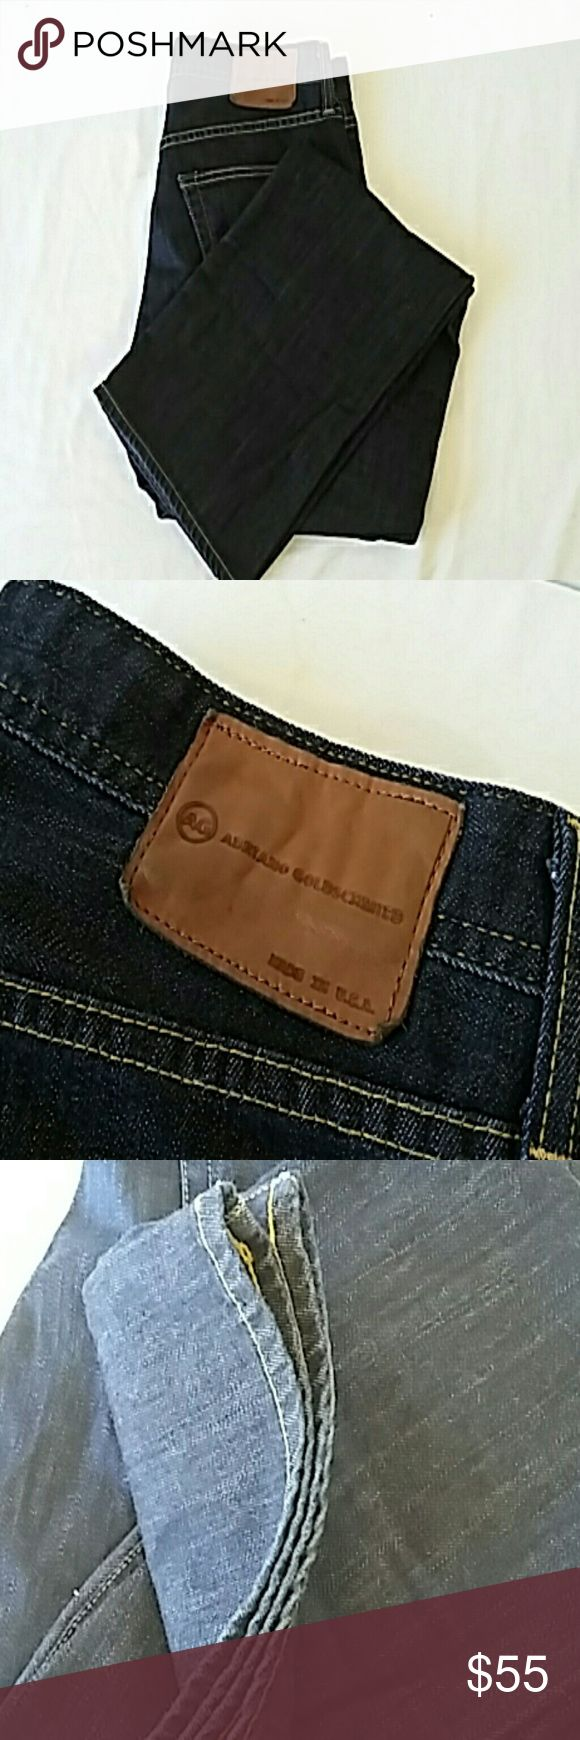 Adriano Goldschmied Mens 33 x 32 Adriano Goldschmied Mens jeans sz 33 x 32. Gently worn condition. no flaws. Adriano Goldschmied Jeans Straight